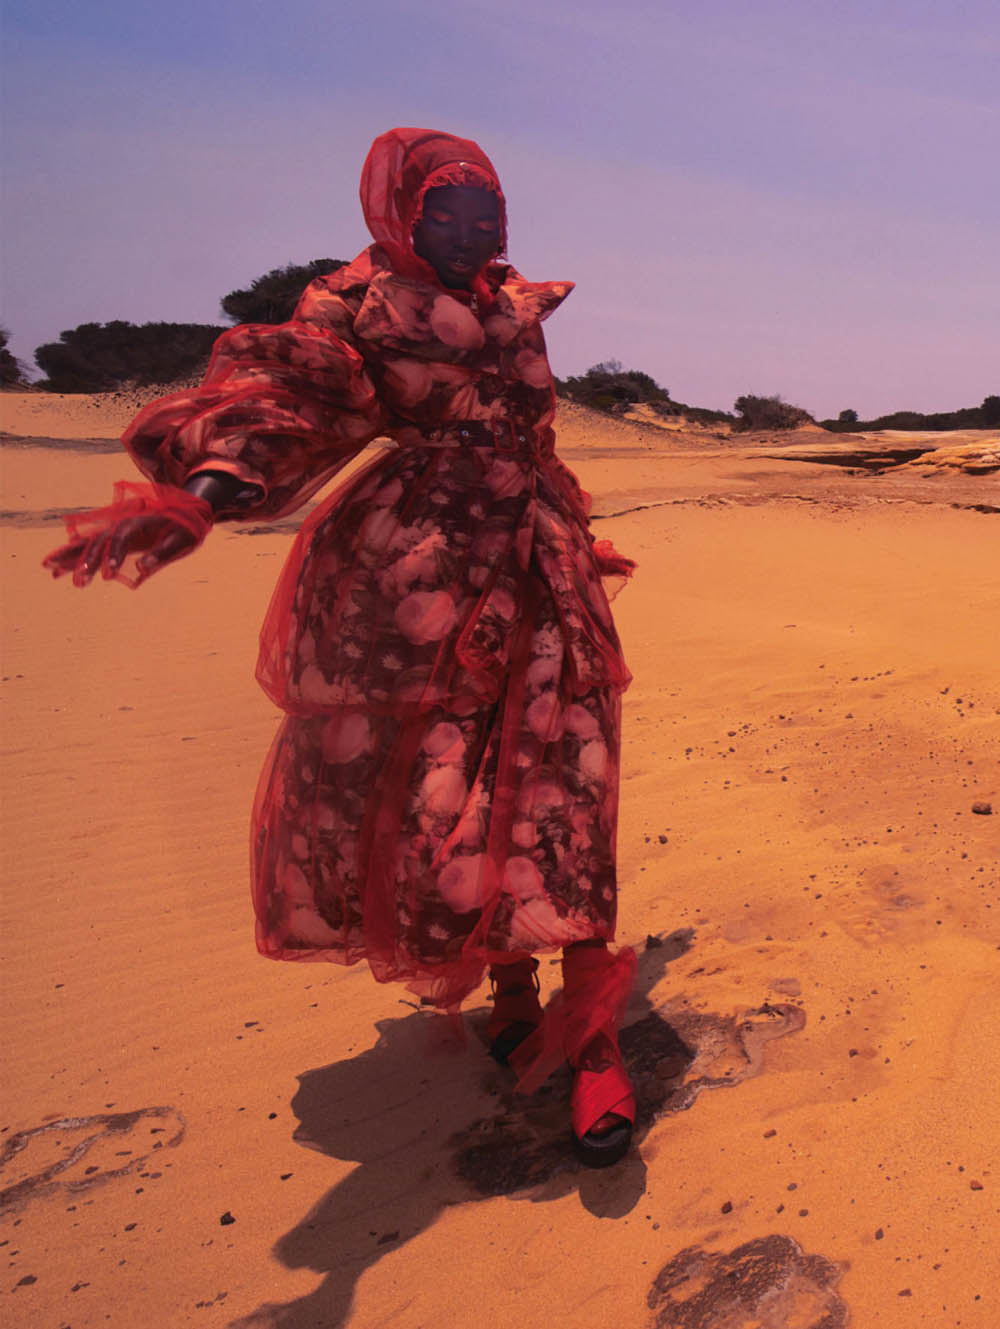 Adut Akech by Emma Summerton for British Vogue May 2020